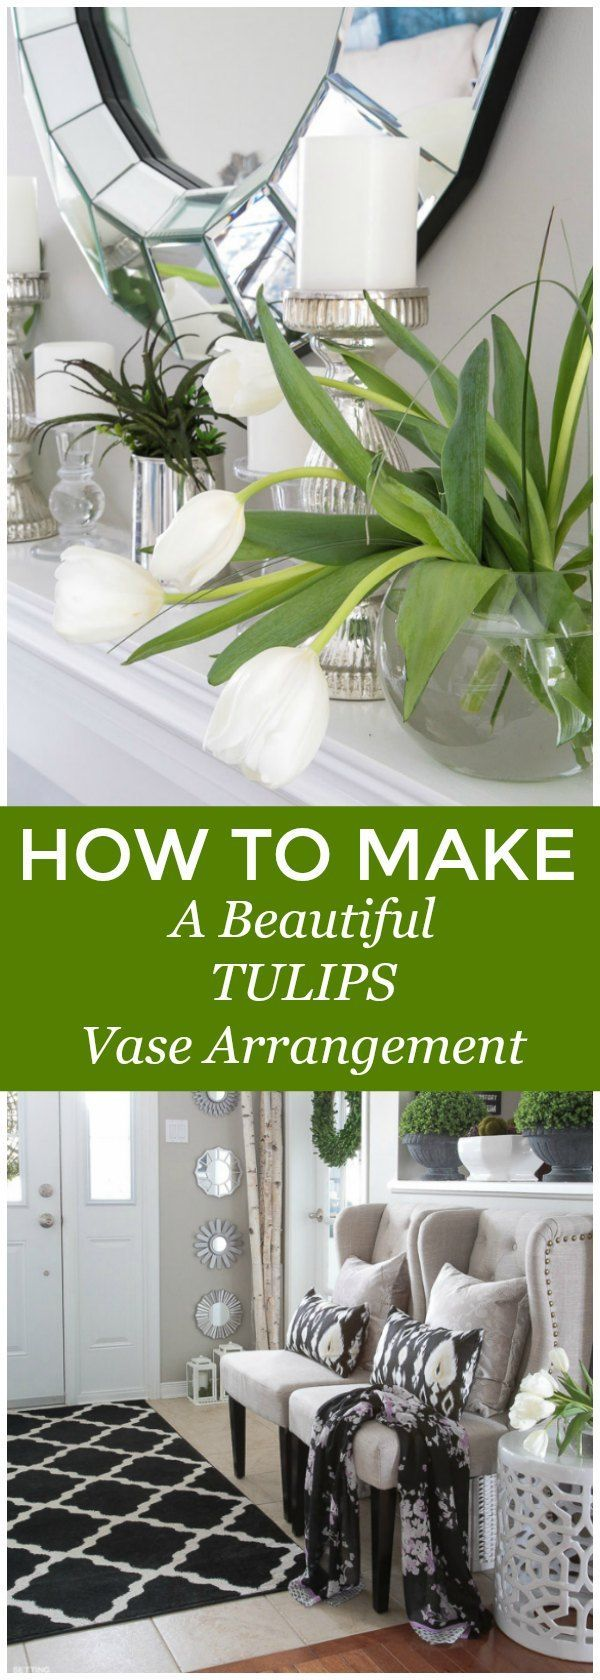 See this easy flower arrangement lesson! How to make a BEAUTIFUL TULIPS Vase Arrangement! Stunning centerpiece idea for a wedding, hostess gift or Mother's Day brunch!